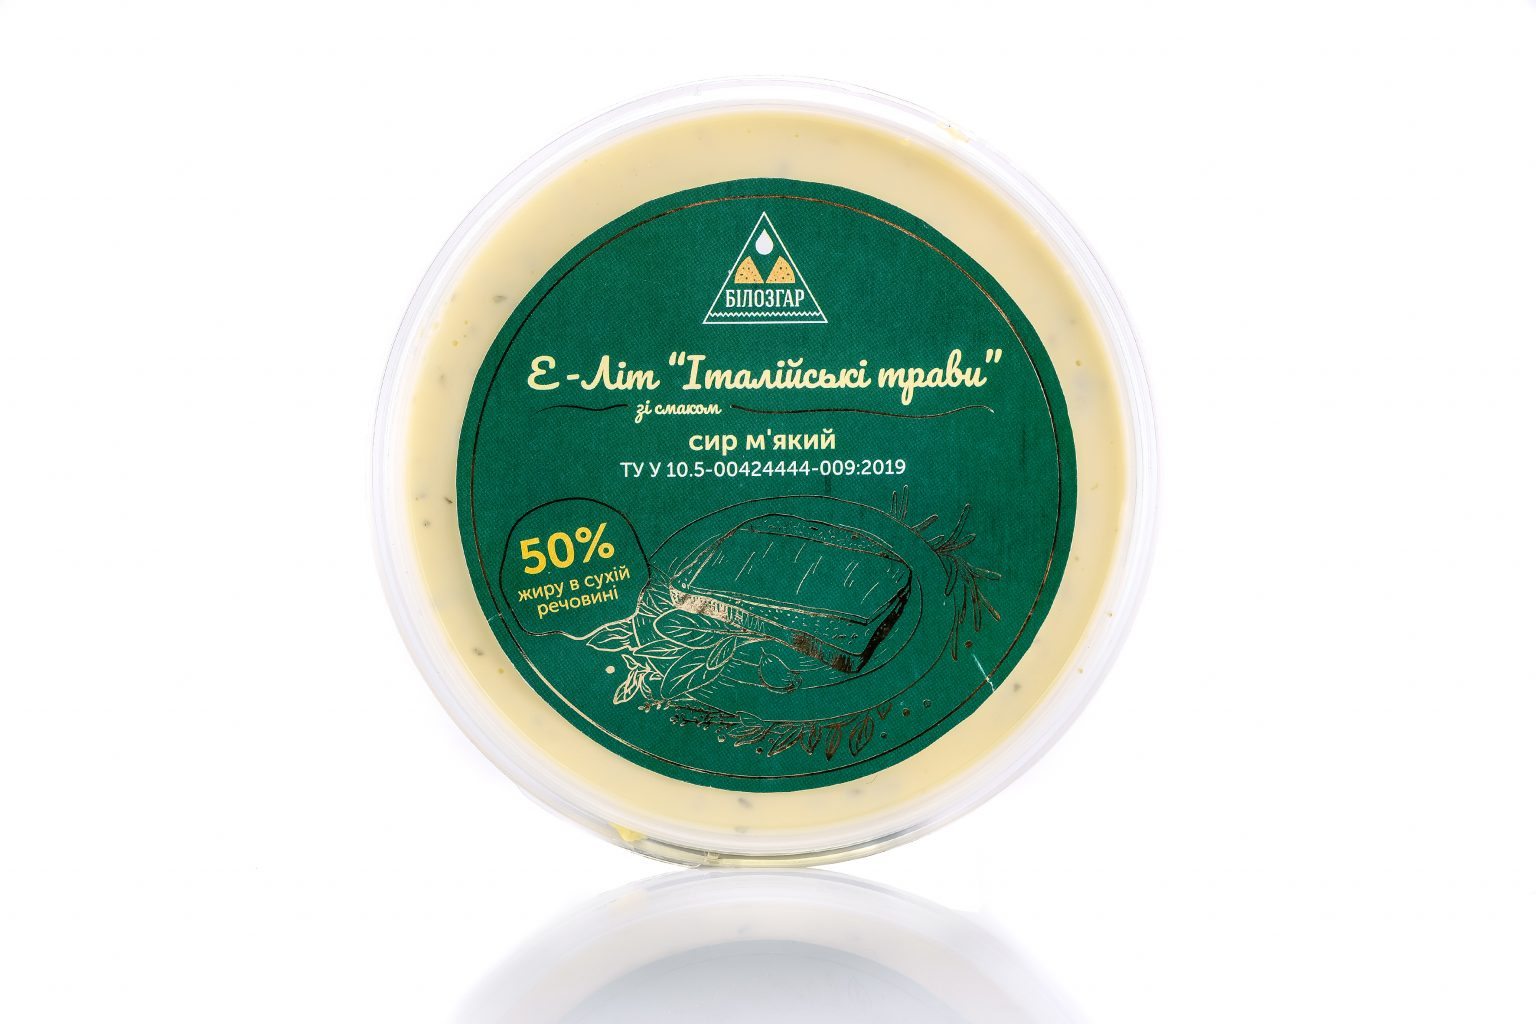 E-Lit 50% fat soft cheese with Italian herbs